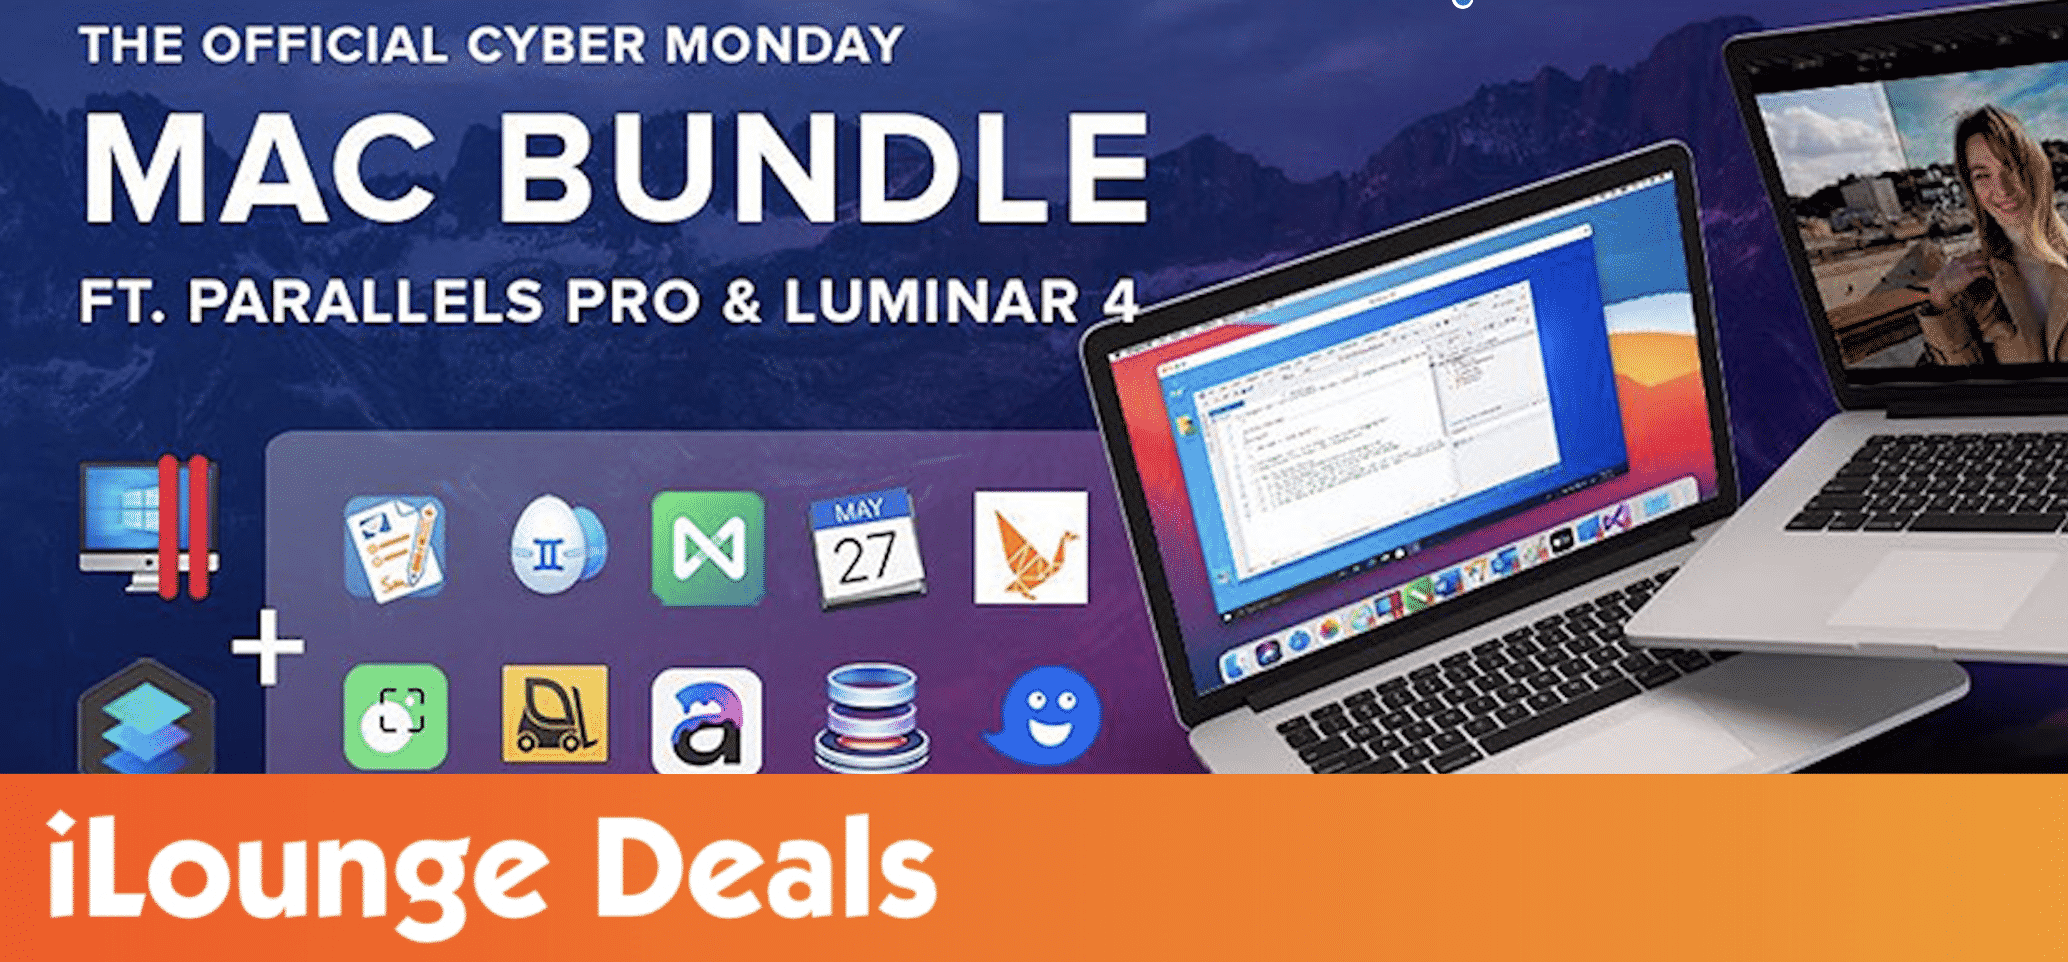 The Official Cyber Monday Mac Bundle